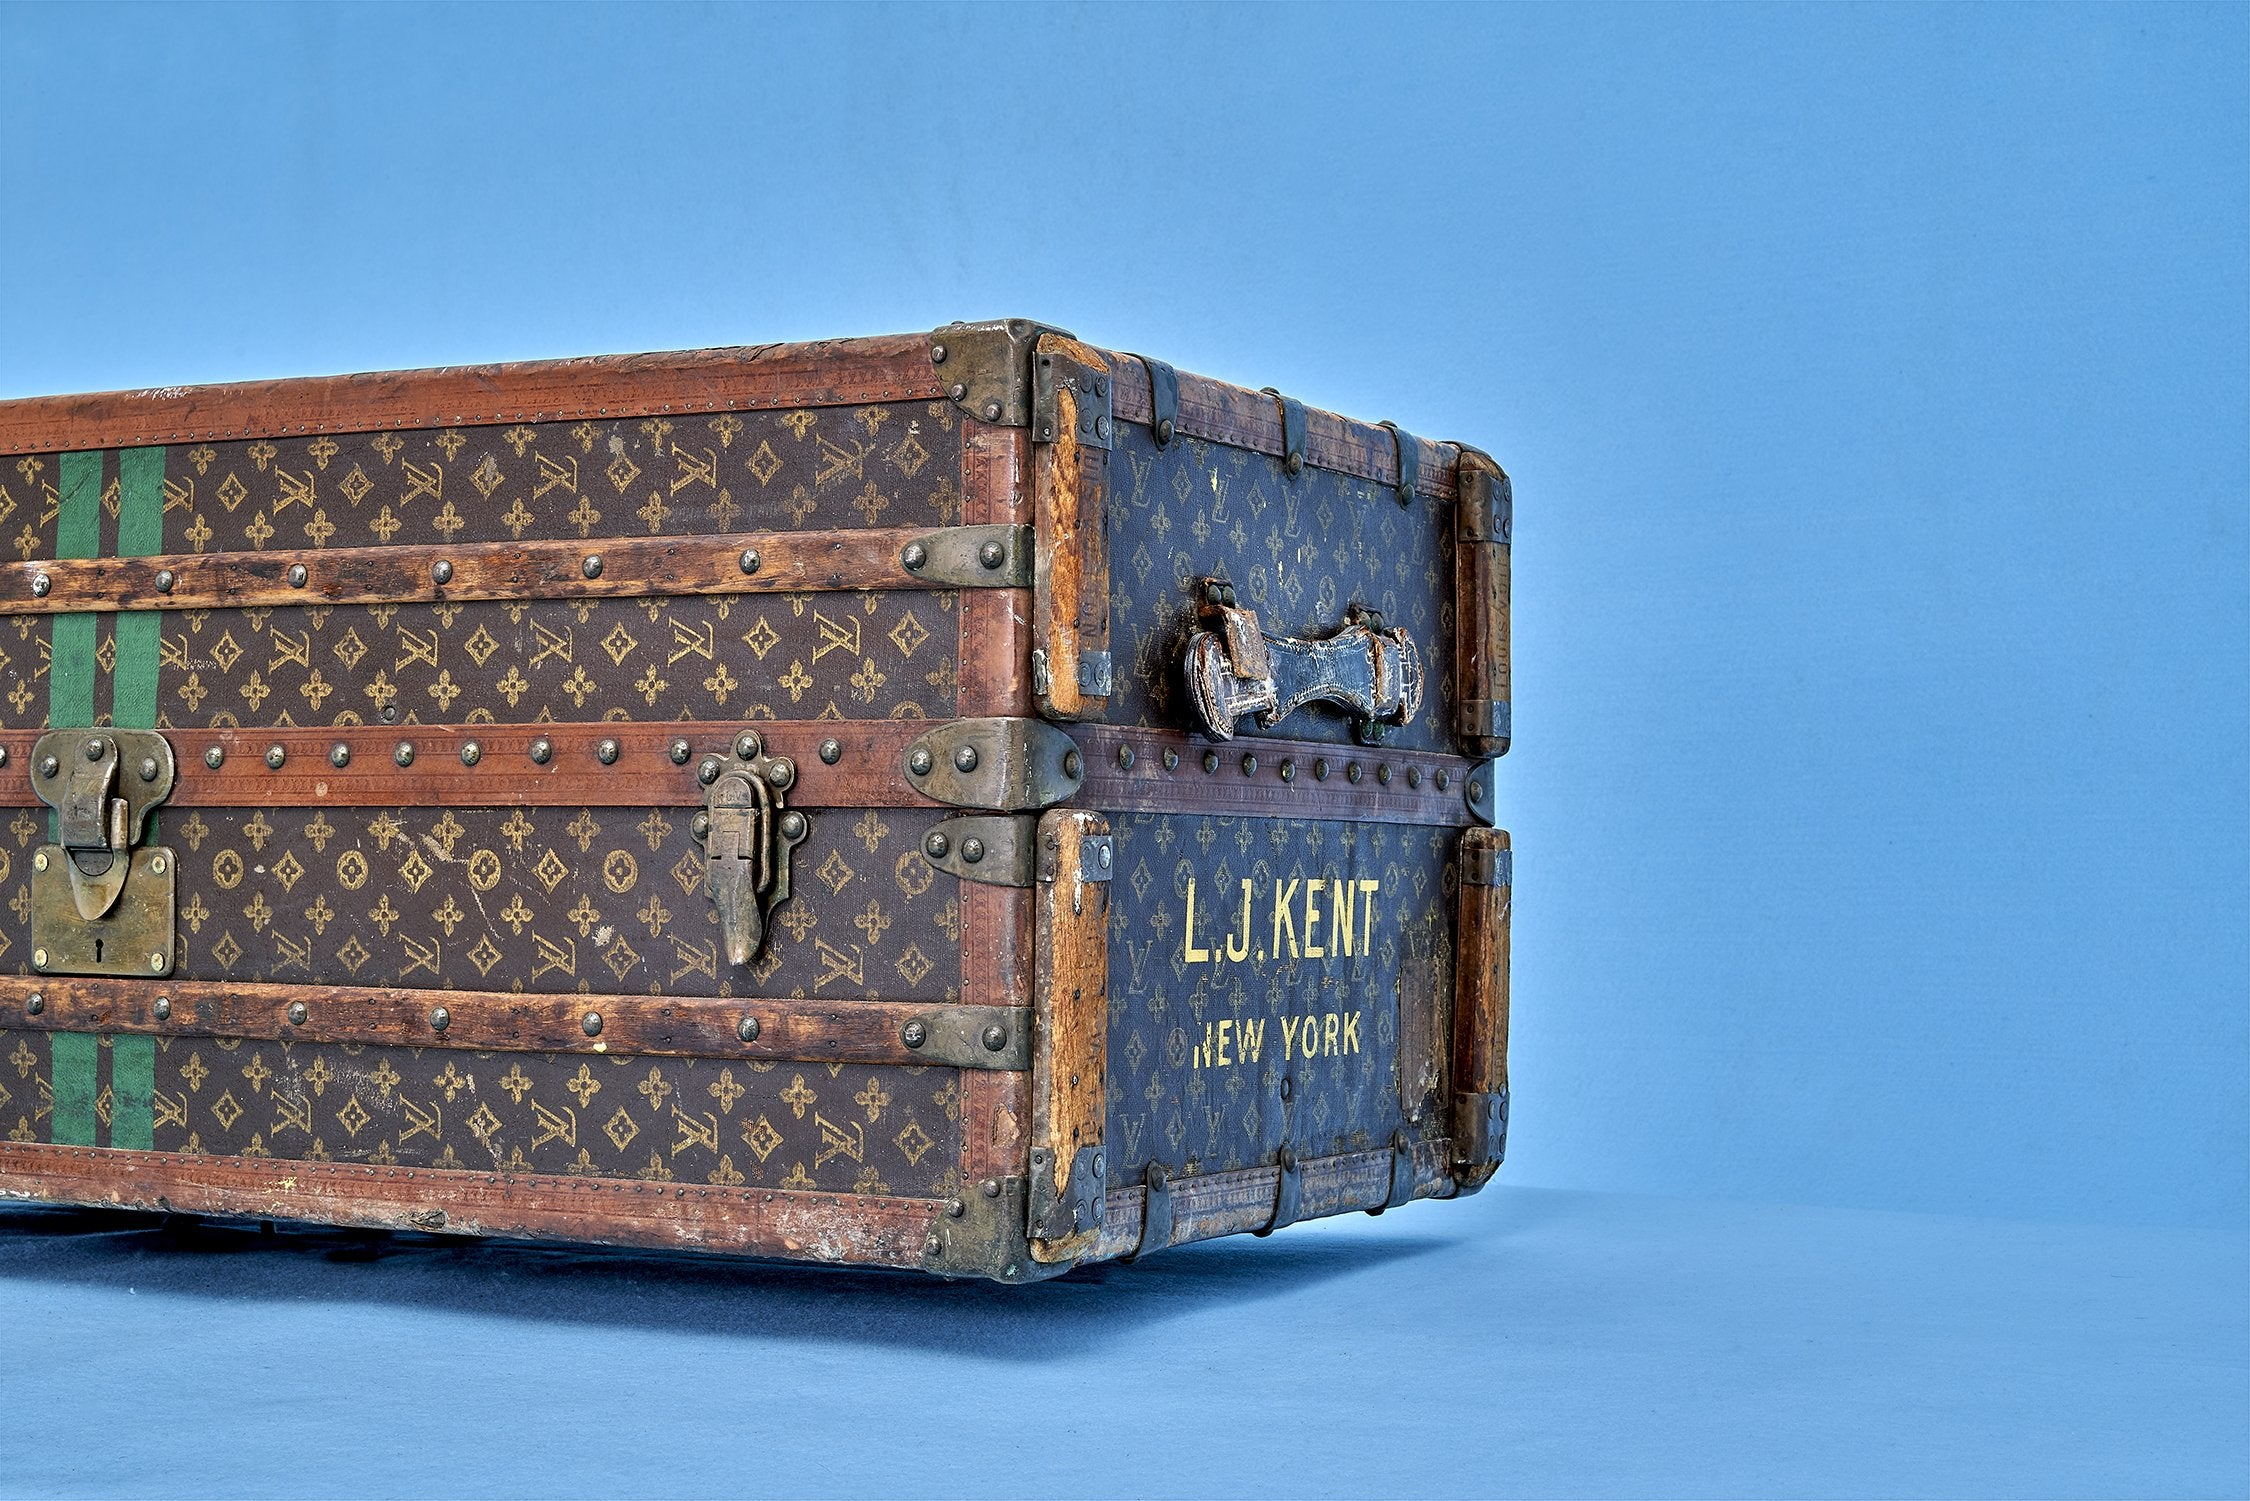 Louis Vuitton Wardrobe Monogram Steamer Trunk circa 1920s